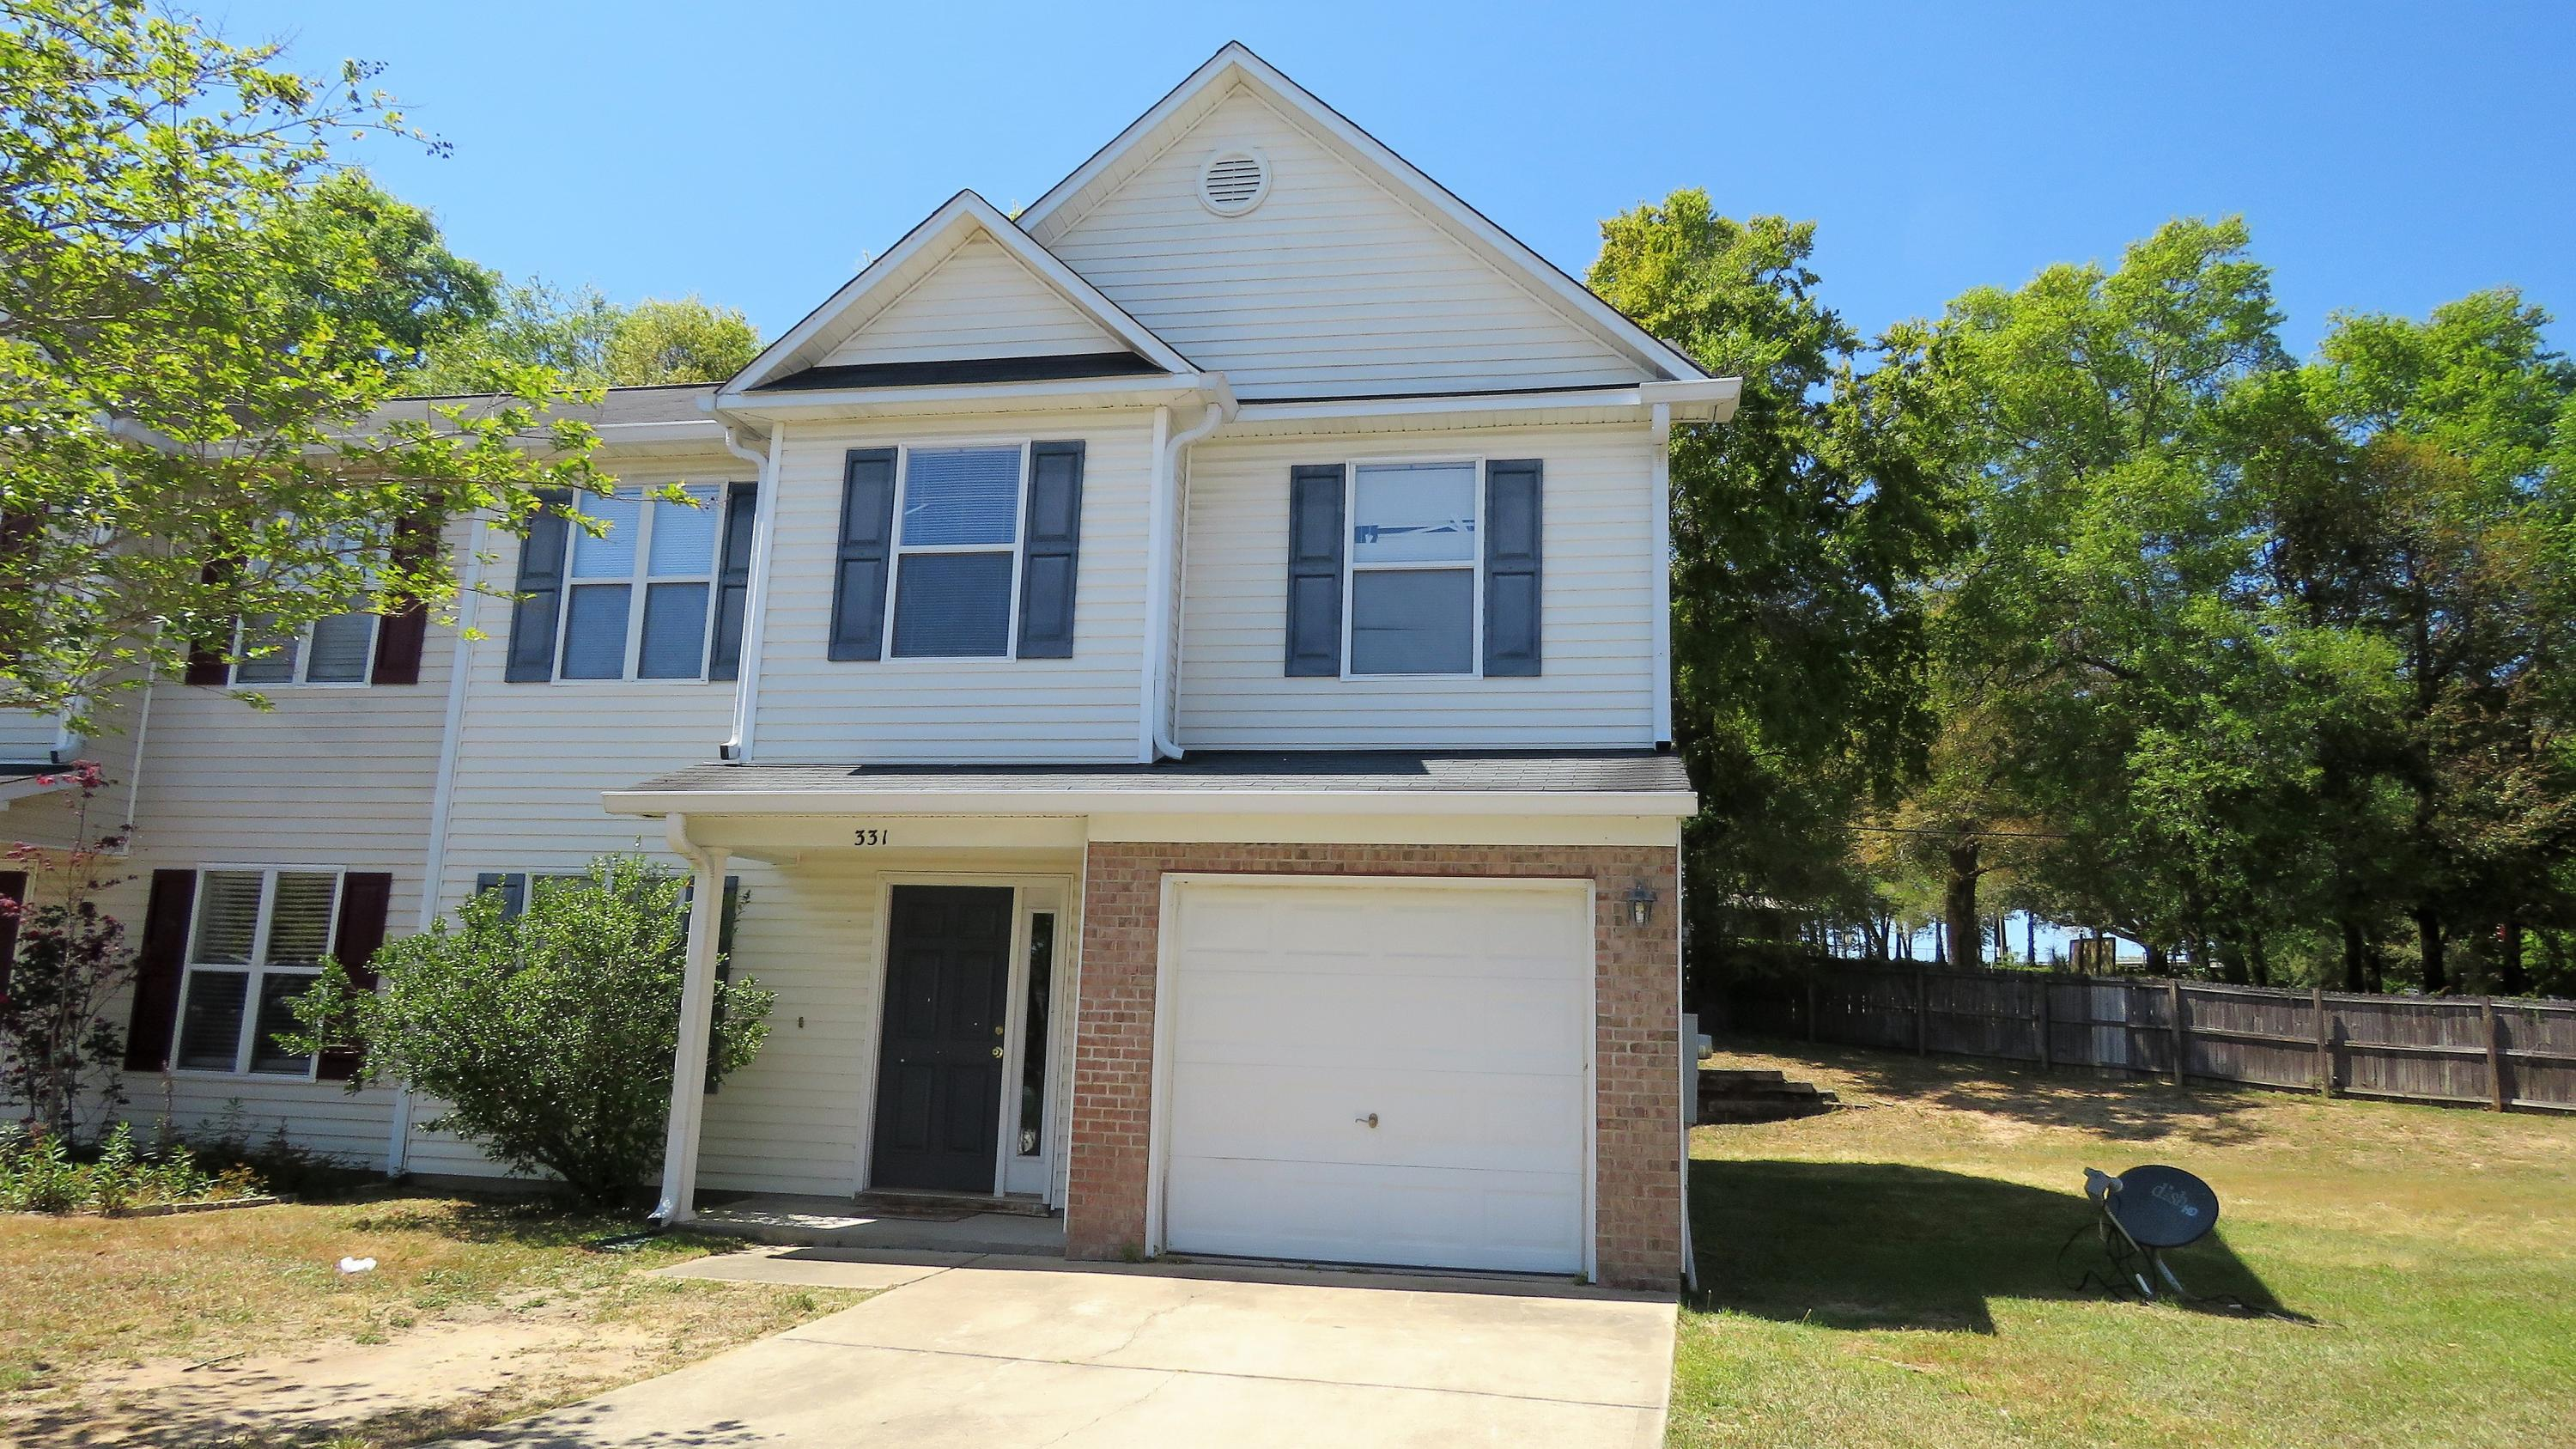 Photo of home for sale at 331 Dahlquist, Crestview FL